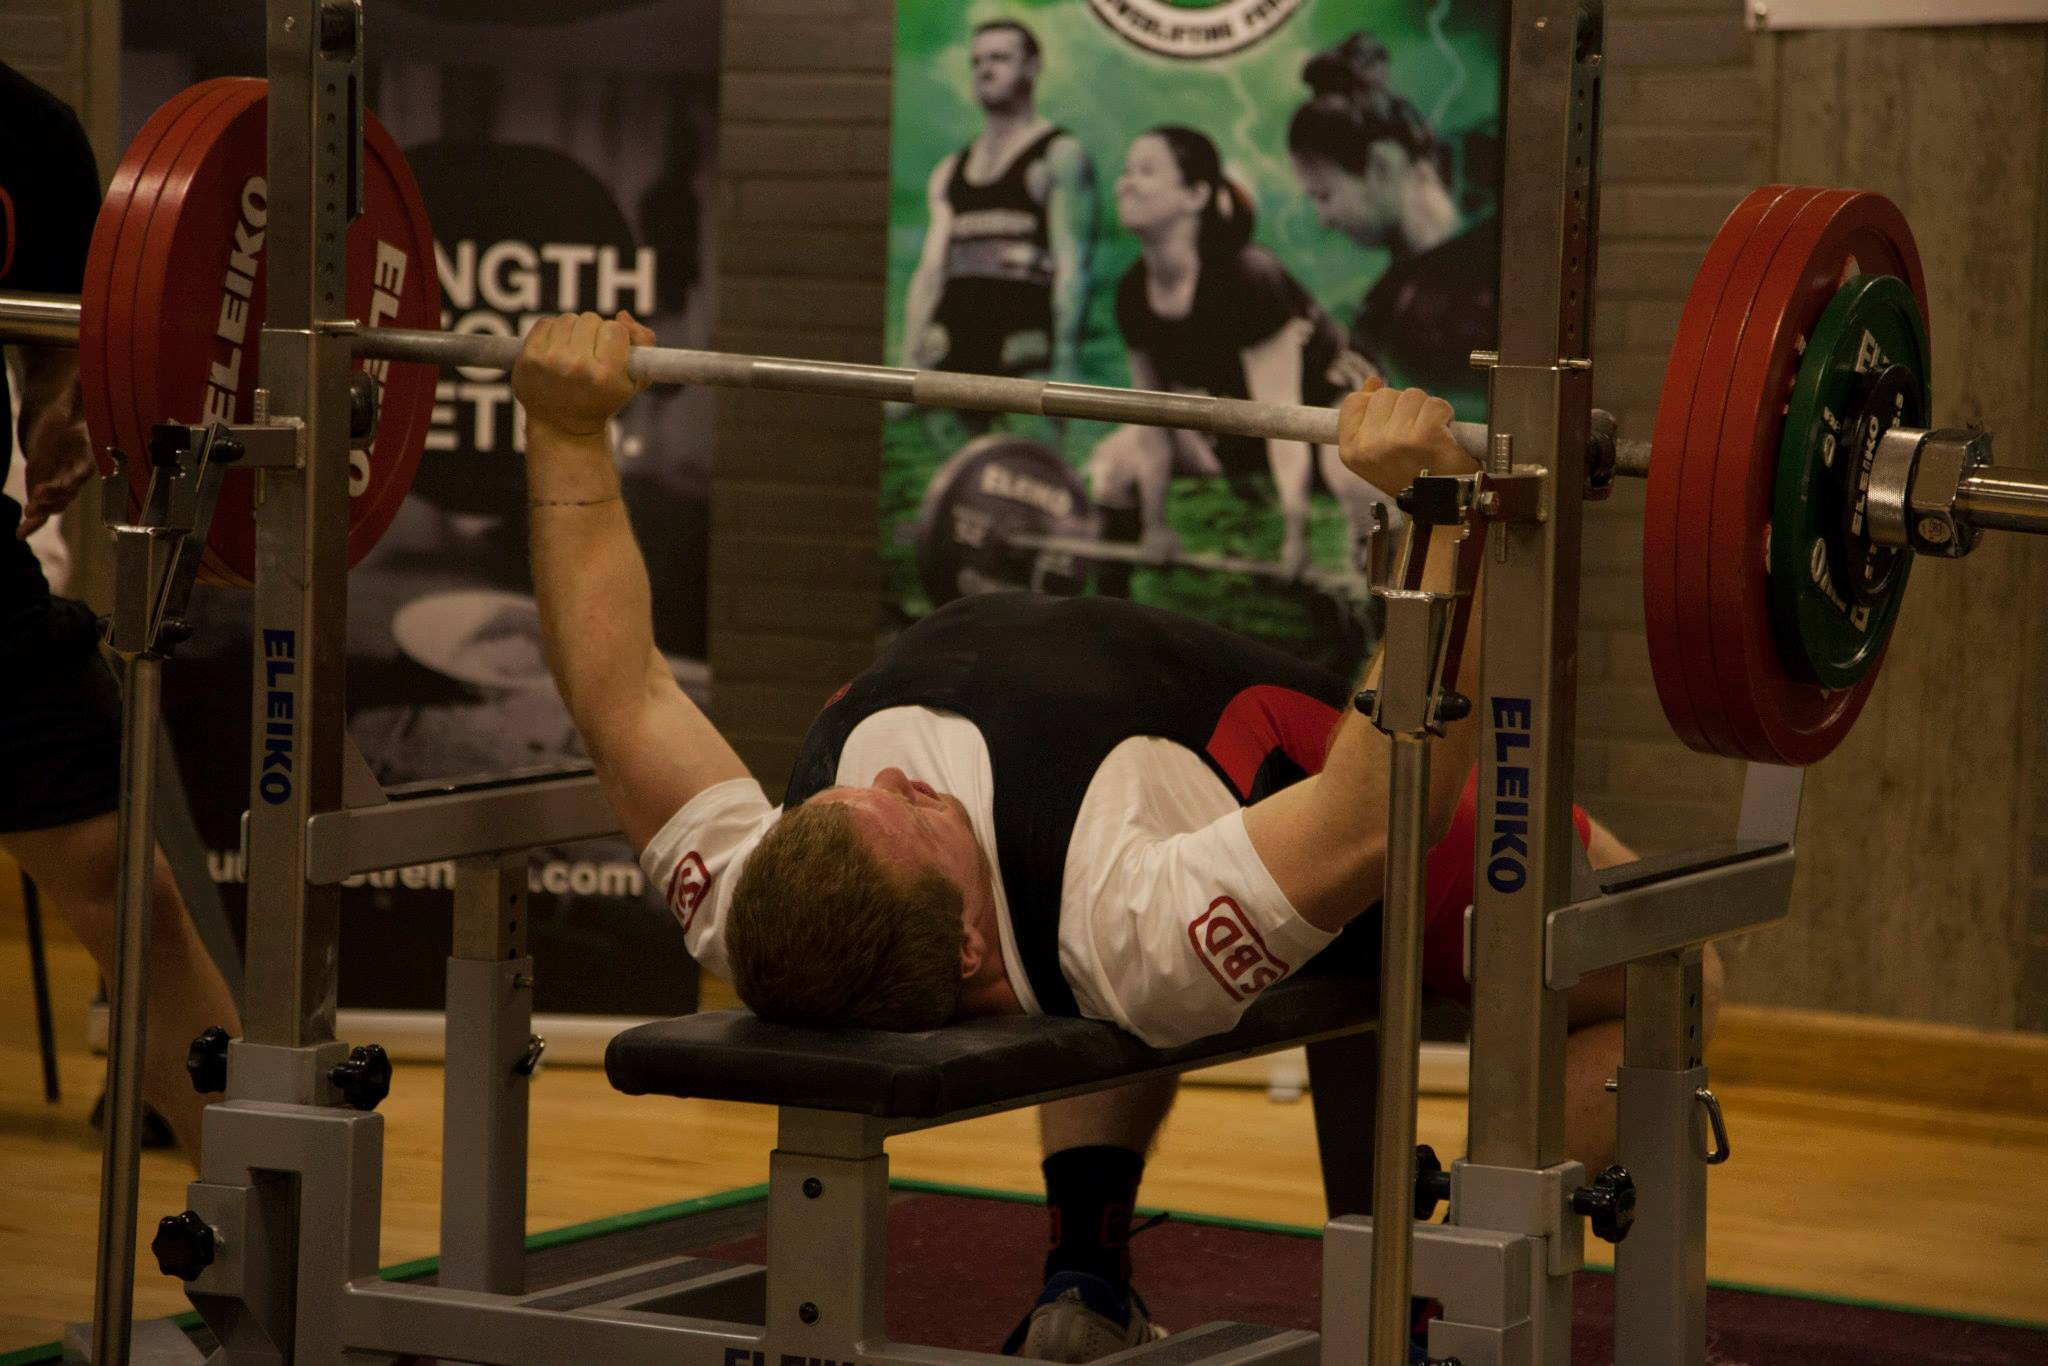 Irish Powerlifting Federation Irish Powerlifting Federation